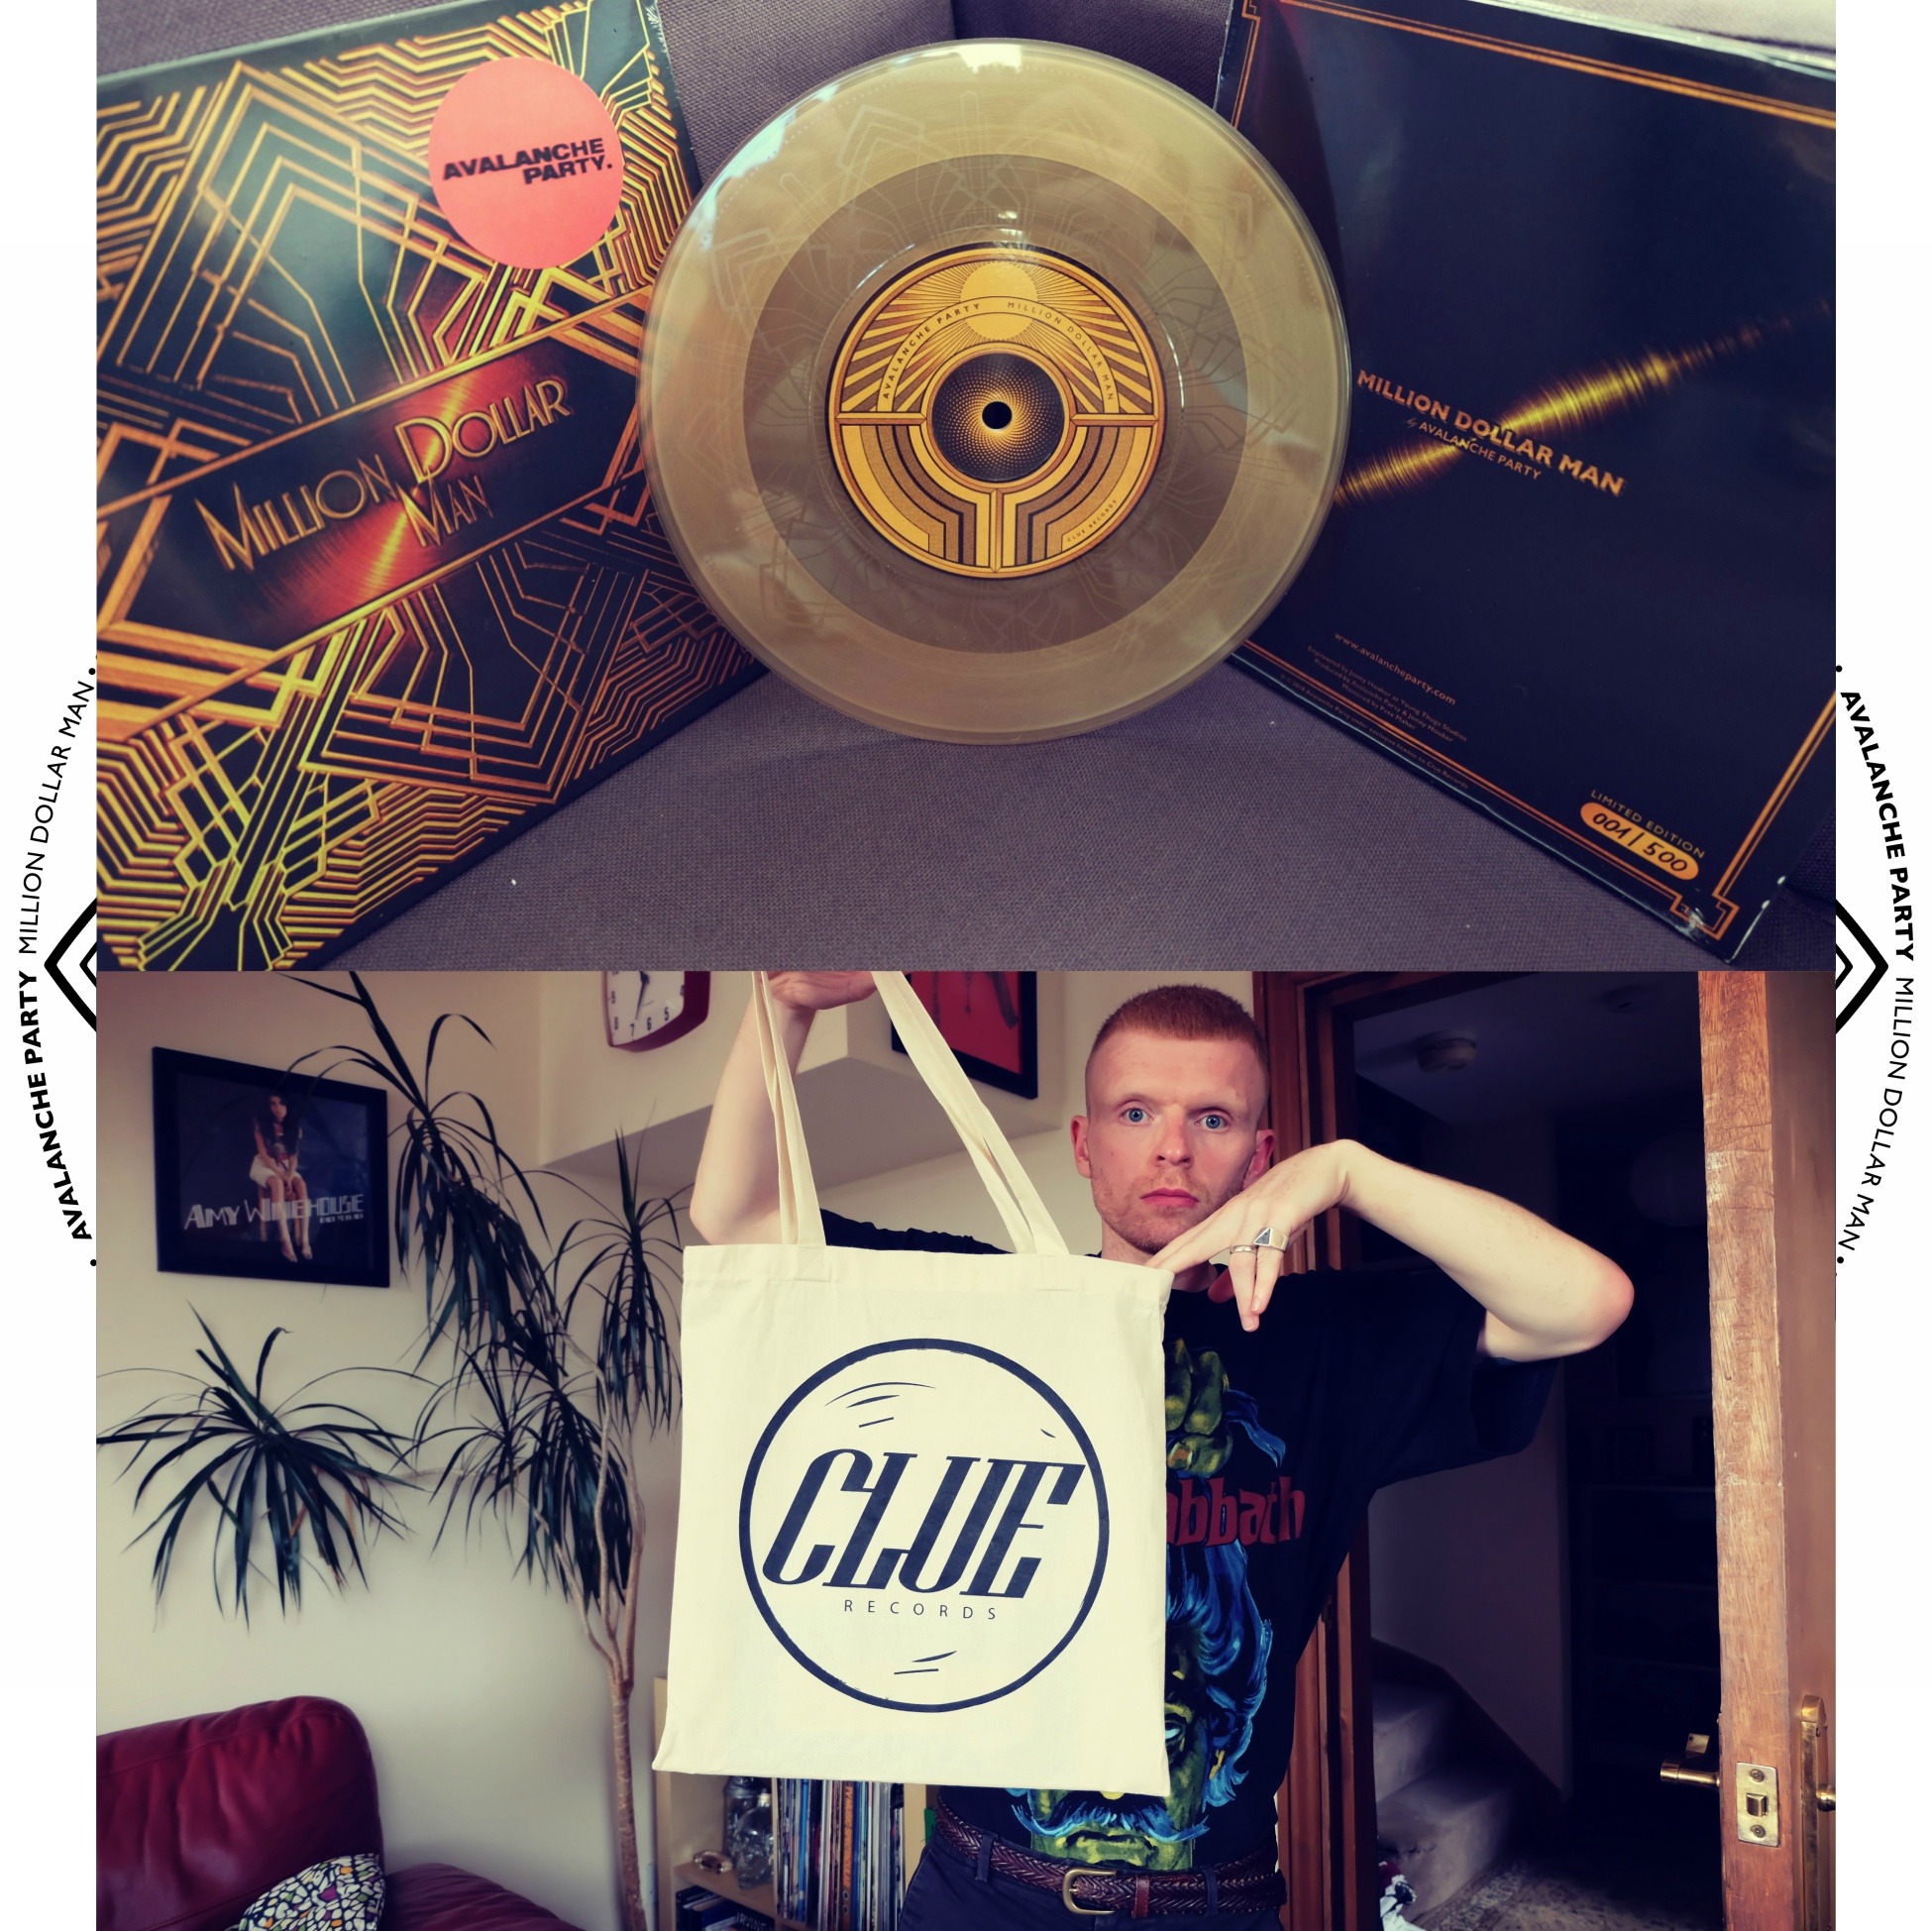 AVALANCHE PARTY VINYL + CLUE RECORDS TOTE BAG [BUNDLE] - Clue Records